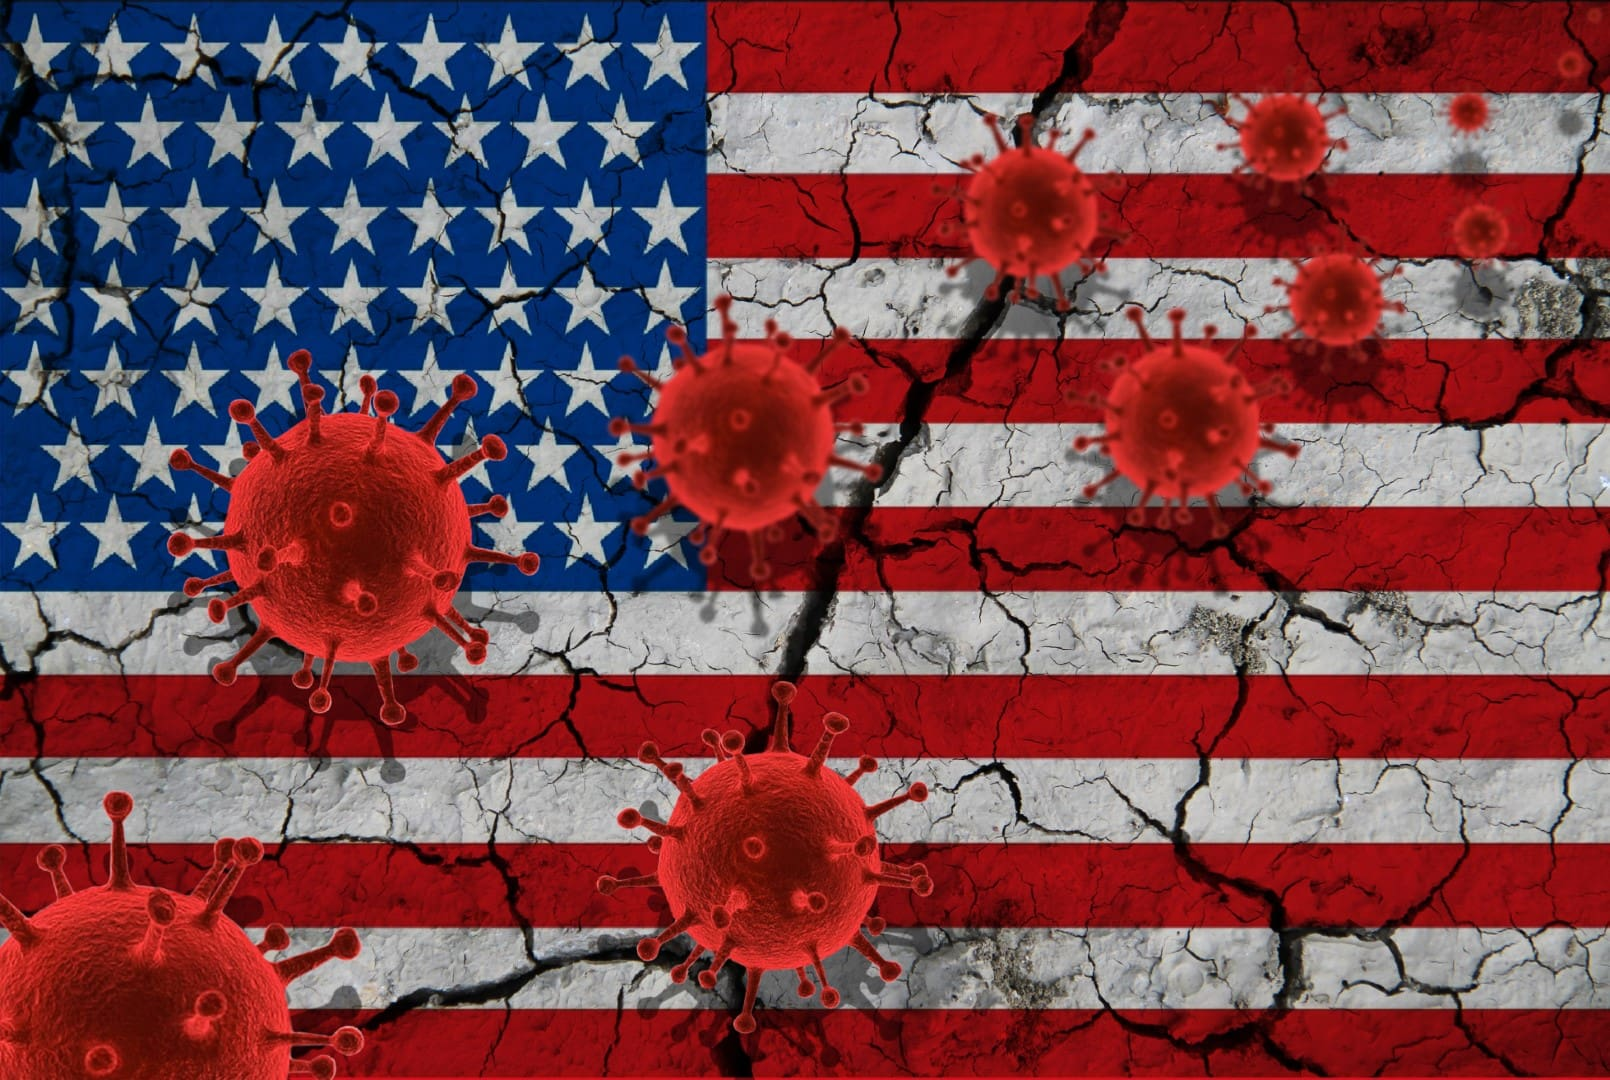 Red virus cells, pandemic influenza virus epidemic infection, coronavirus, Asian flu concept, against the background of a cracked US flag